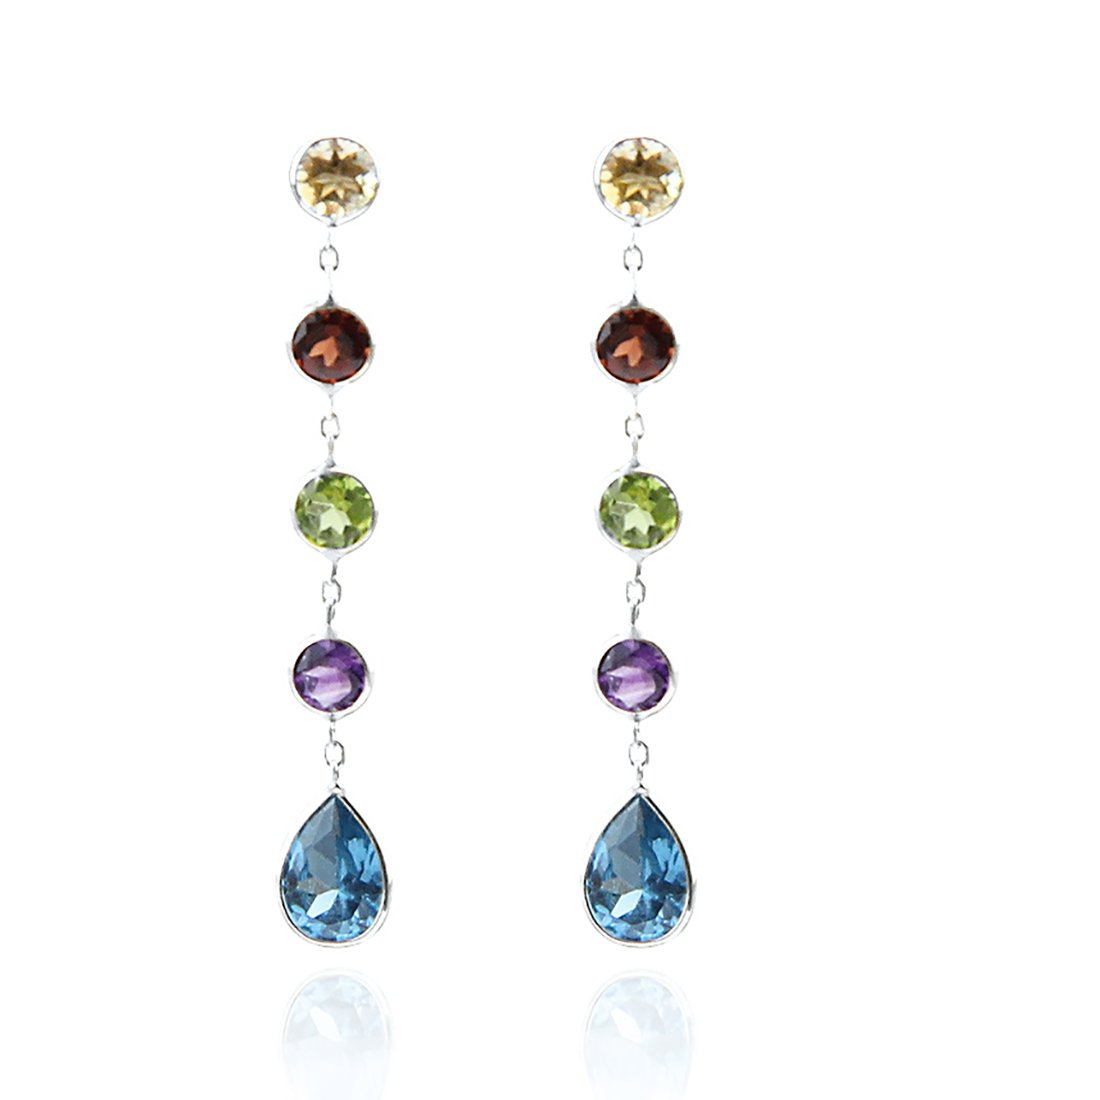 14k White Gold Drop Earrings with Round and Pear Shaped Gemstones